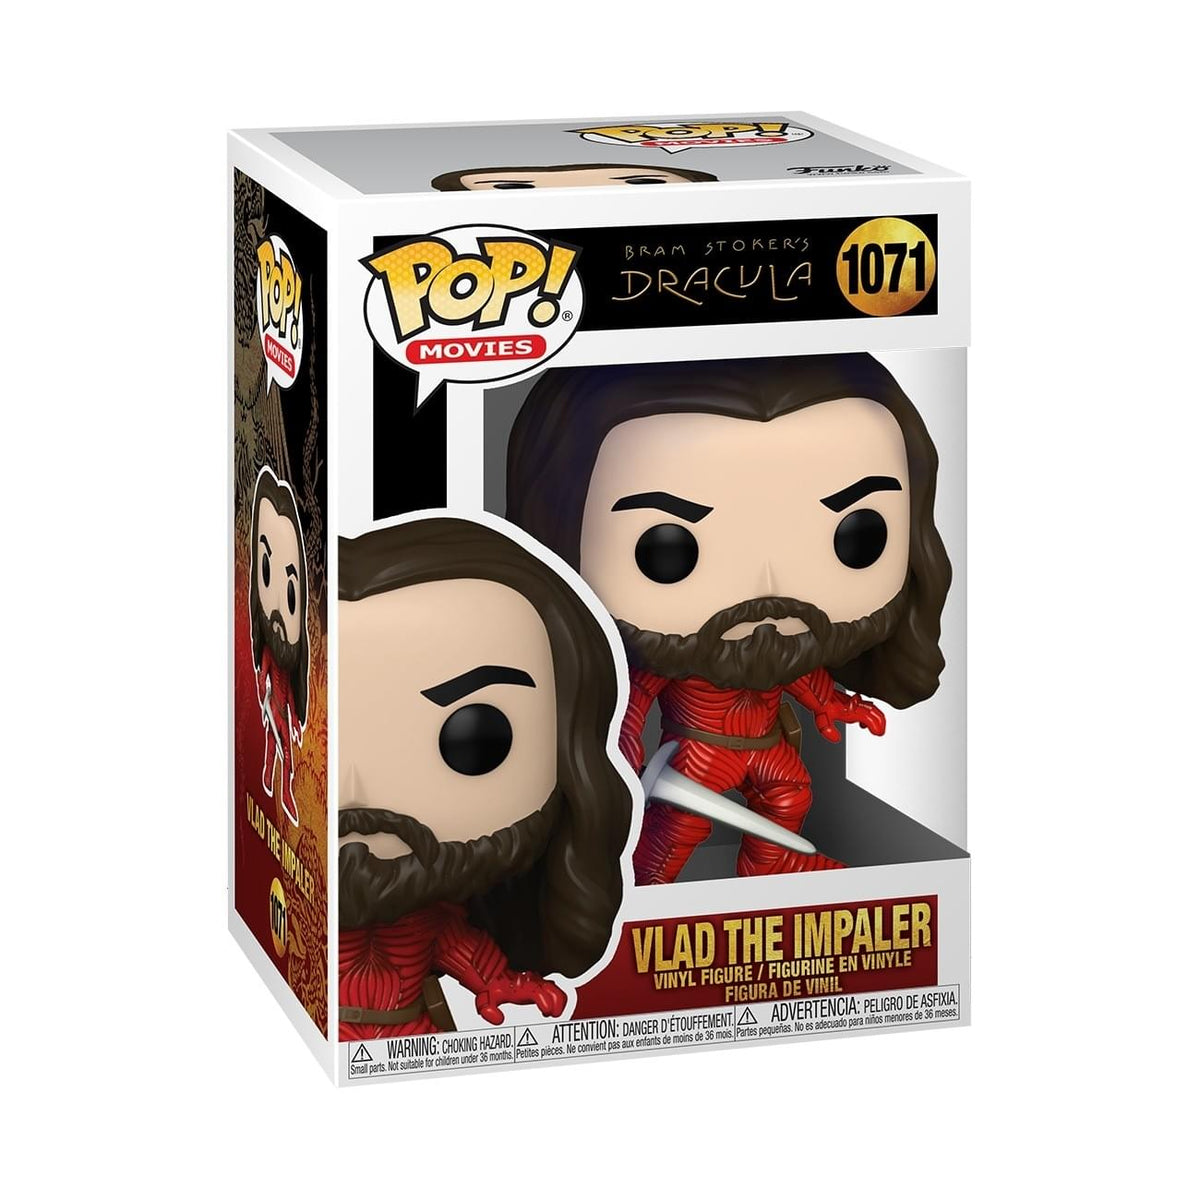 Bram Stokers Dracula Funko POP Vinyl Figure | Armored Dracula